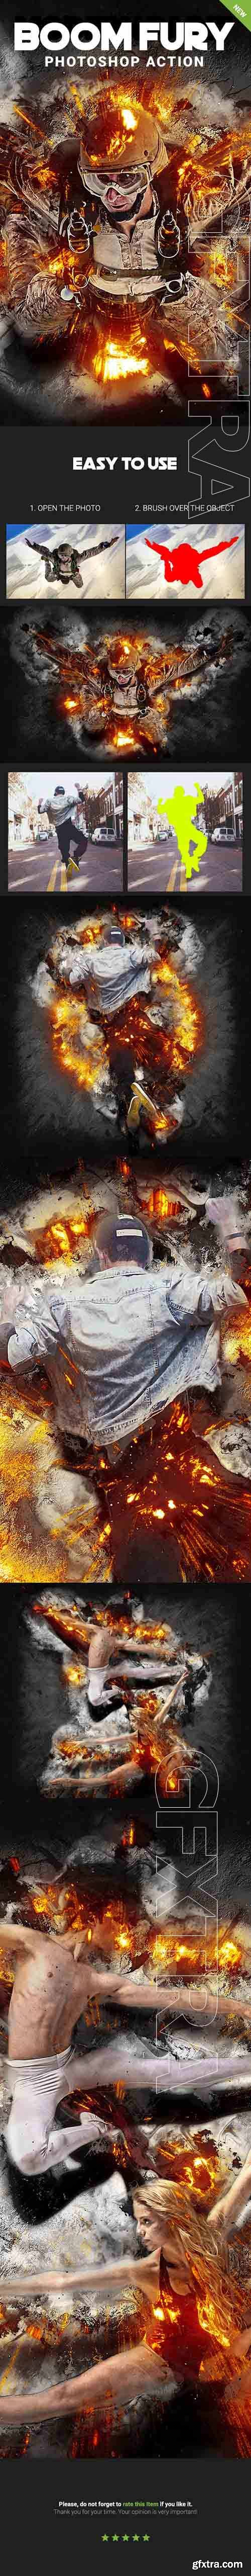 GraphicRiver - Boom Fury Photoshop Action 20819804